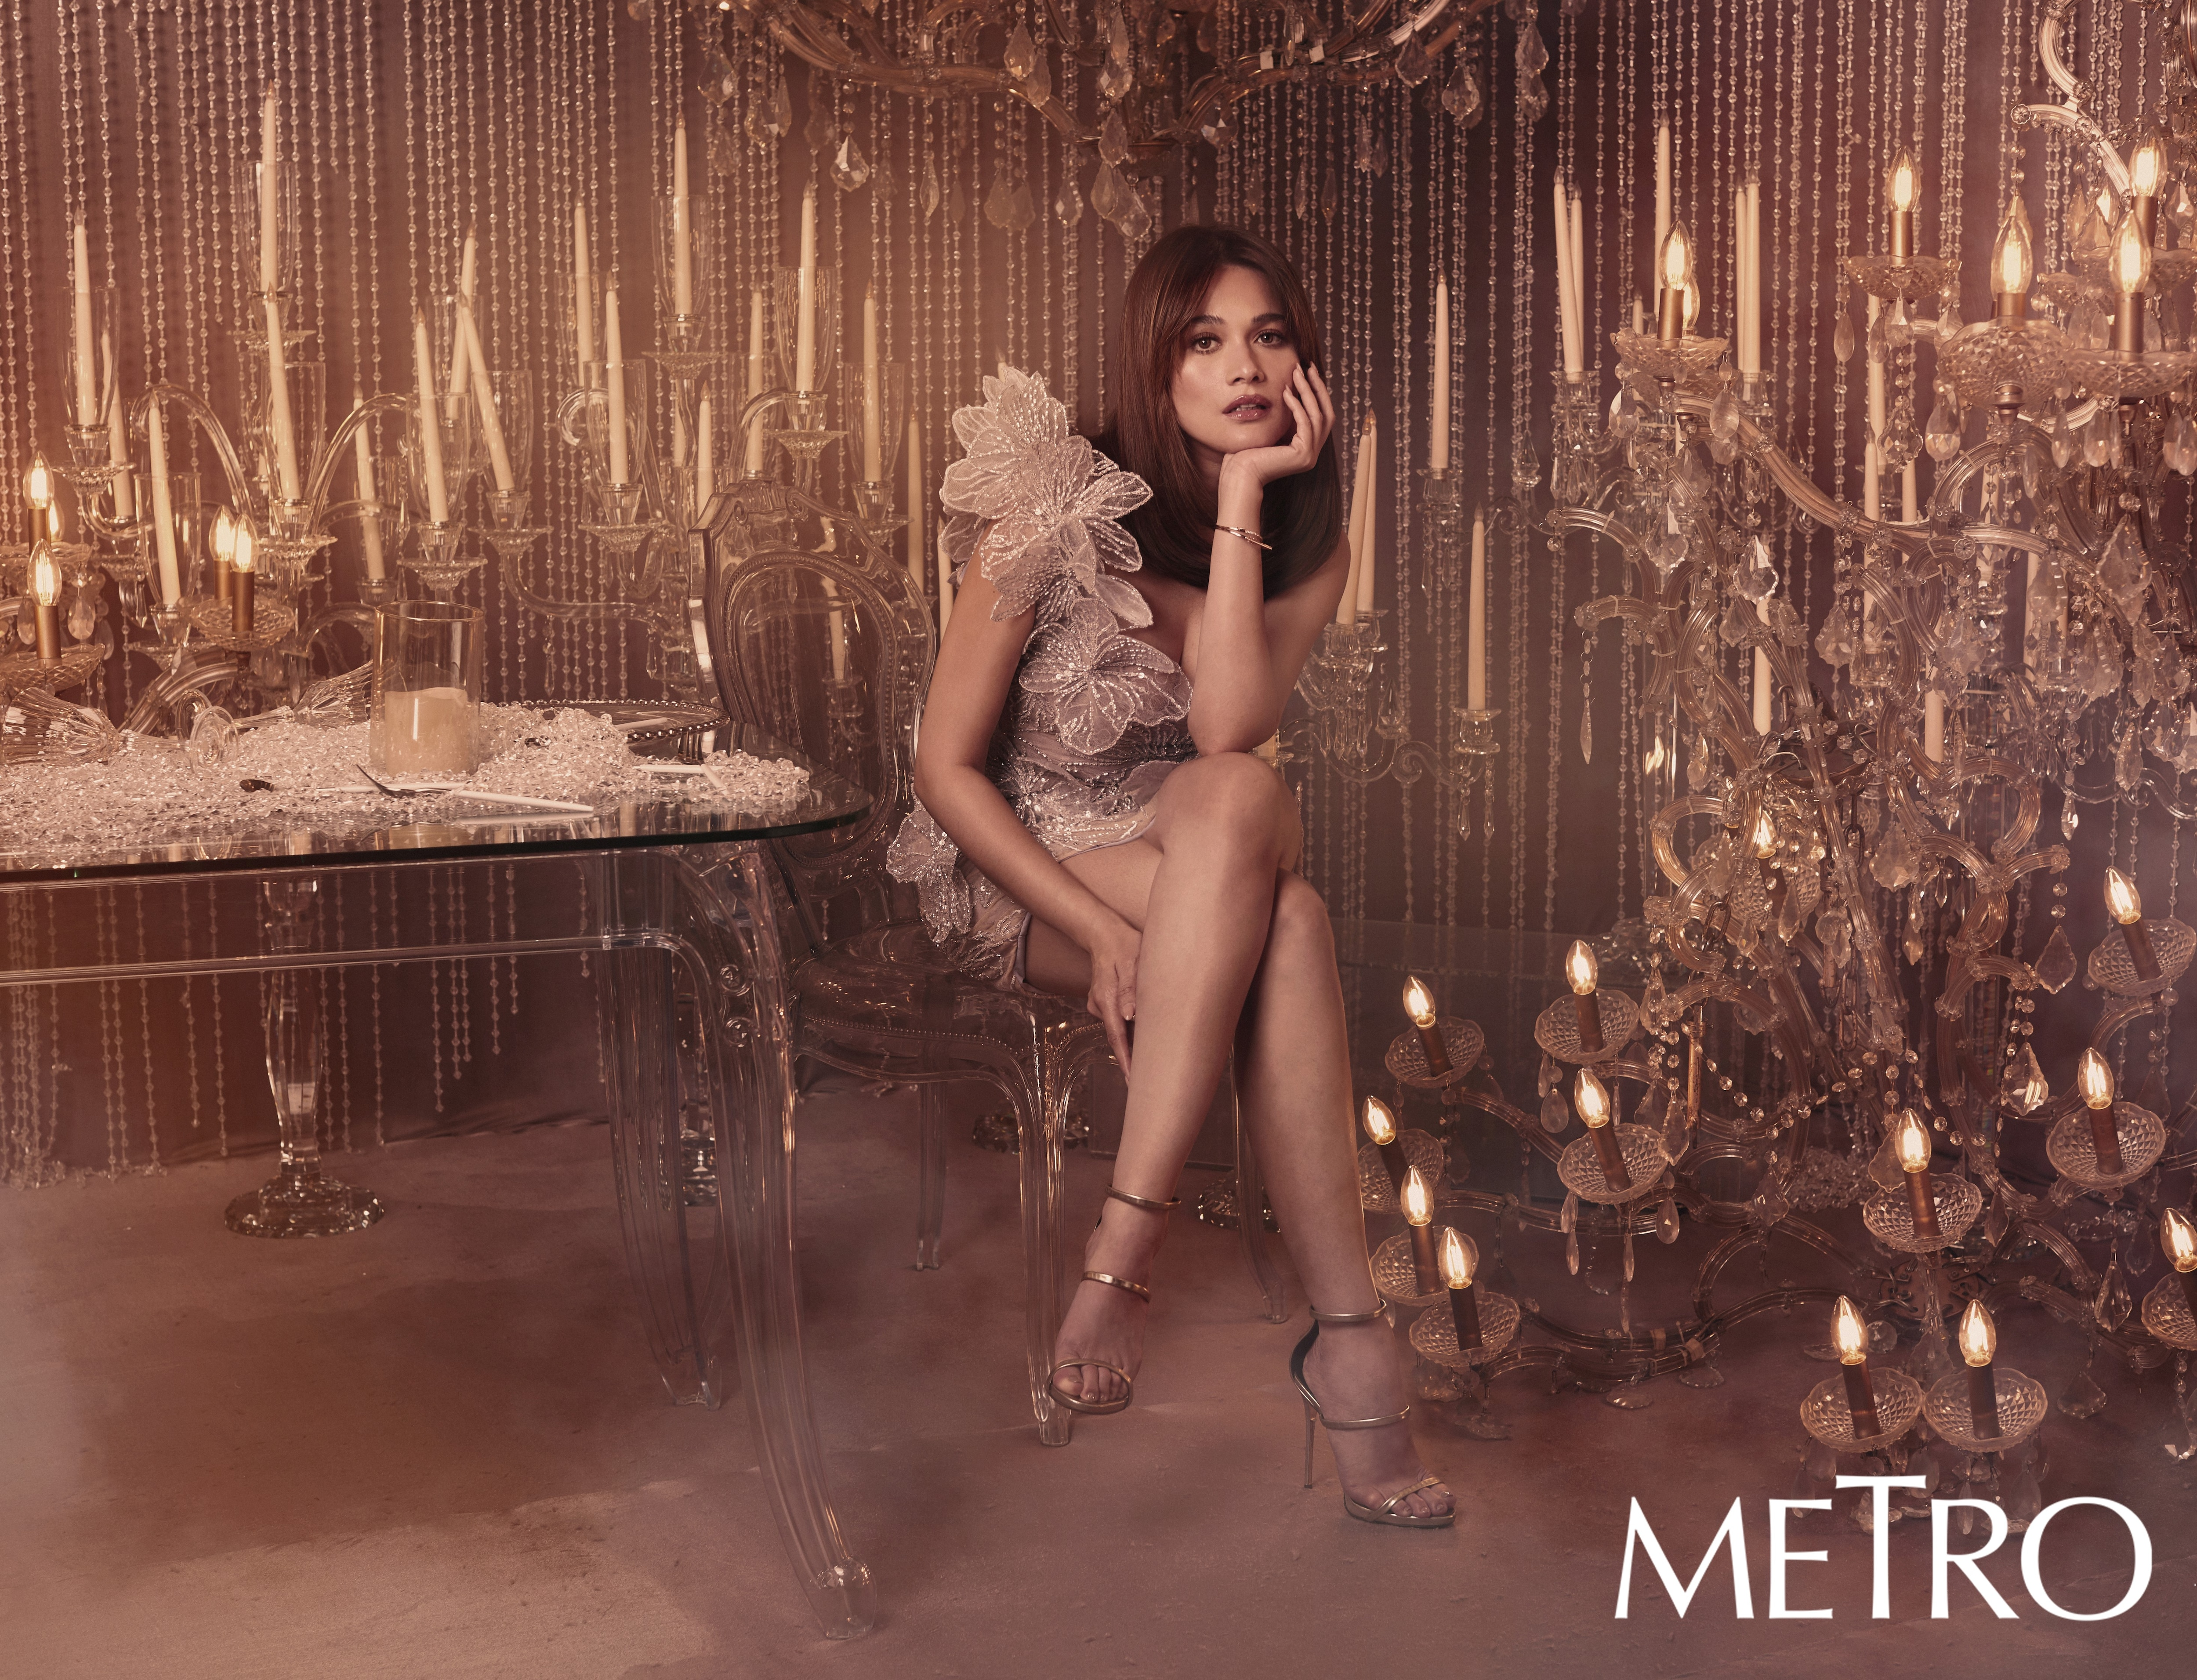 Bea Alonzo is one of the cover girls for Metro magazine's 30th anniversary special.